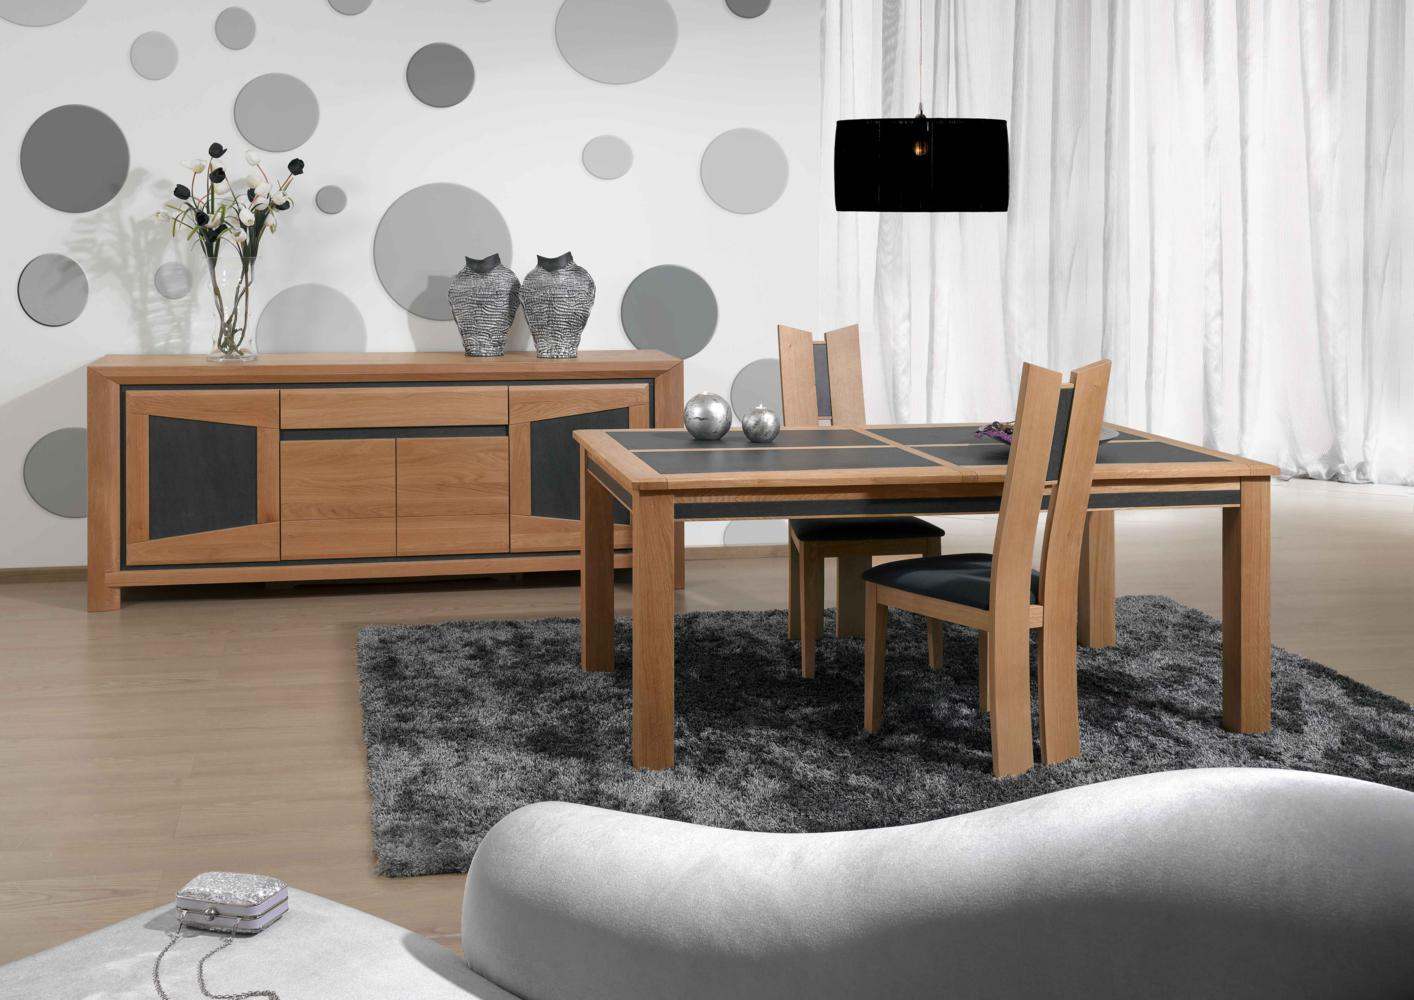 acheter votre table carree chene massif et ceramique 1 allonge chez simeuble. Black Bedroom Furniture Sets. Home Design Ideas